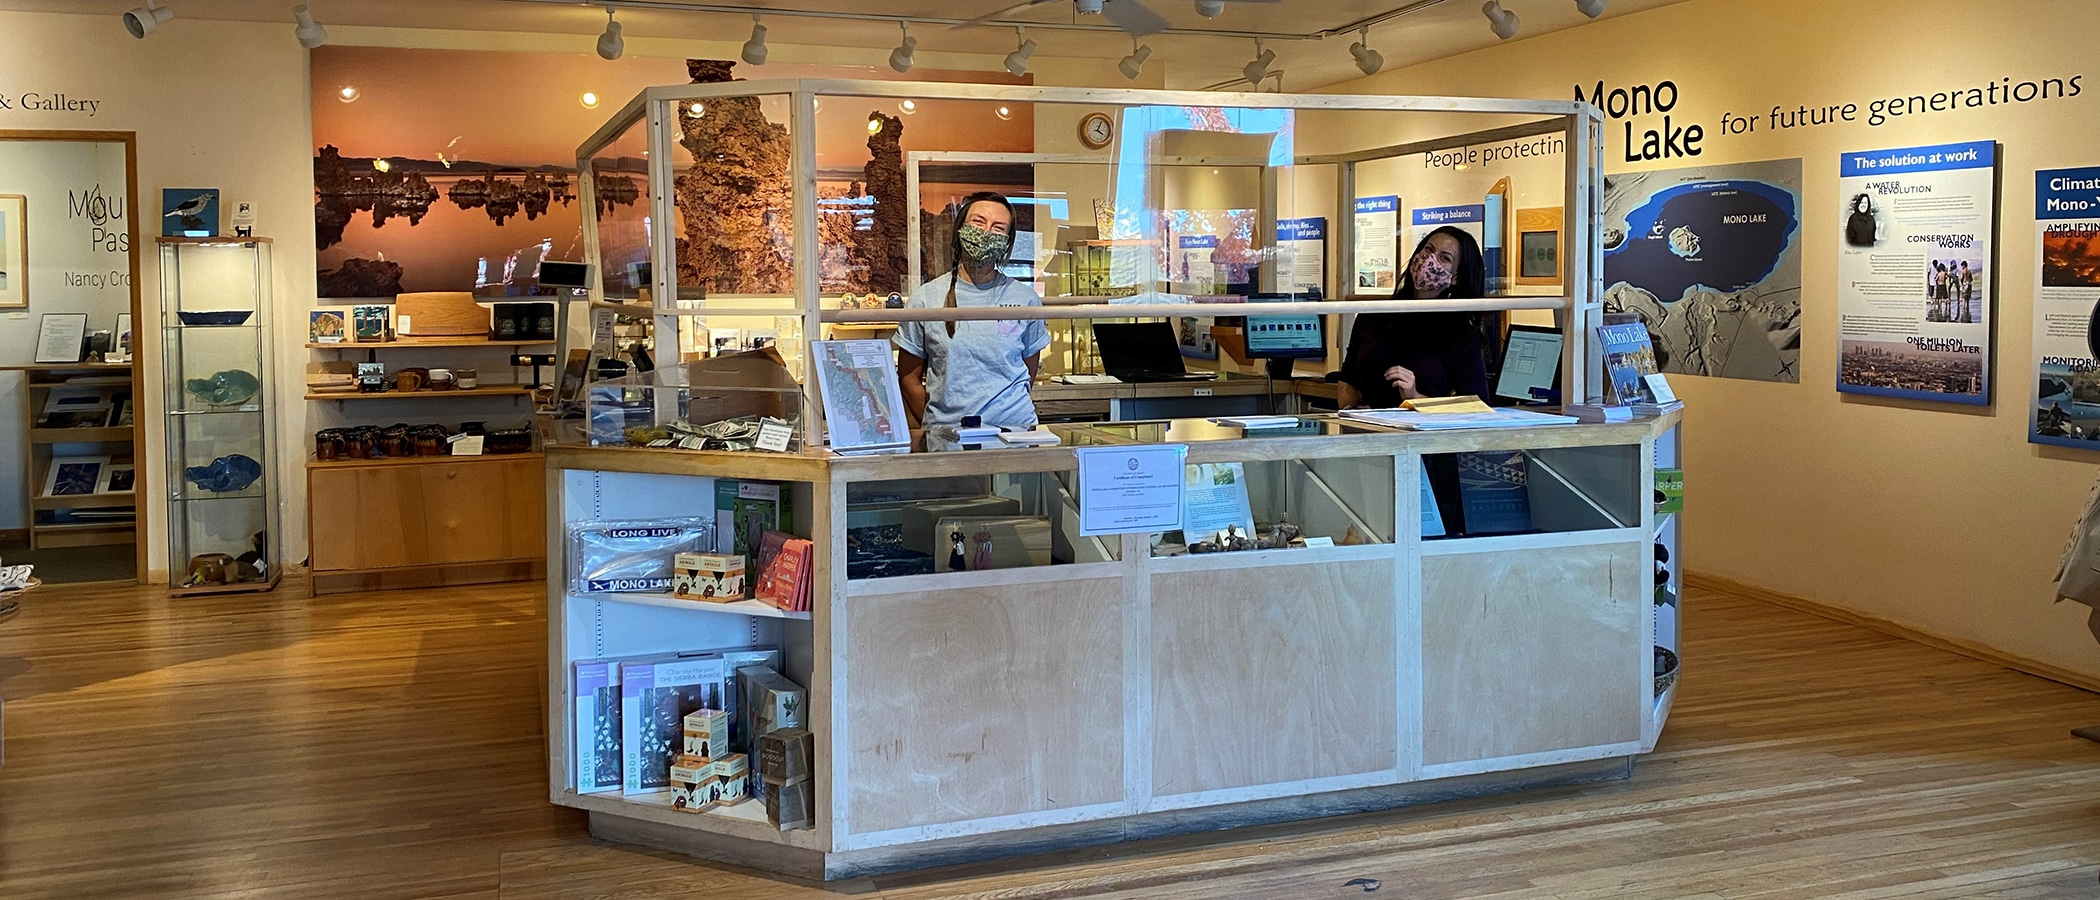 Two people stand inside the warm and welcoming Mono Lake Committee Information Center & Bookstore cash wrap wearing face masks and standing six feet apart while behind a plexiglass barrier and they are surrounded by Mono Lake information on the walls and gifts and books on the shelves.